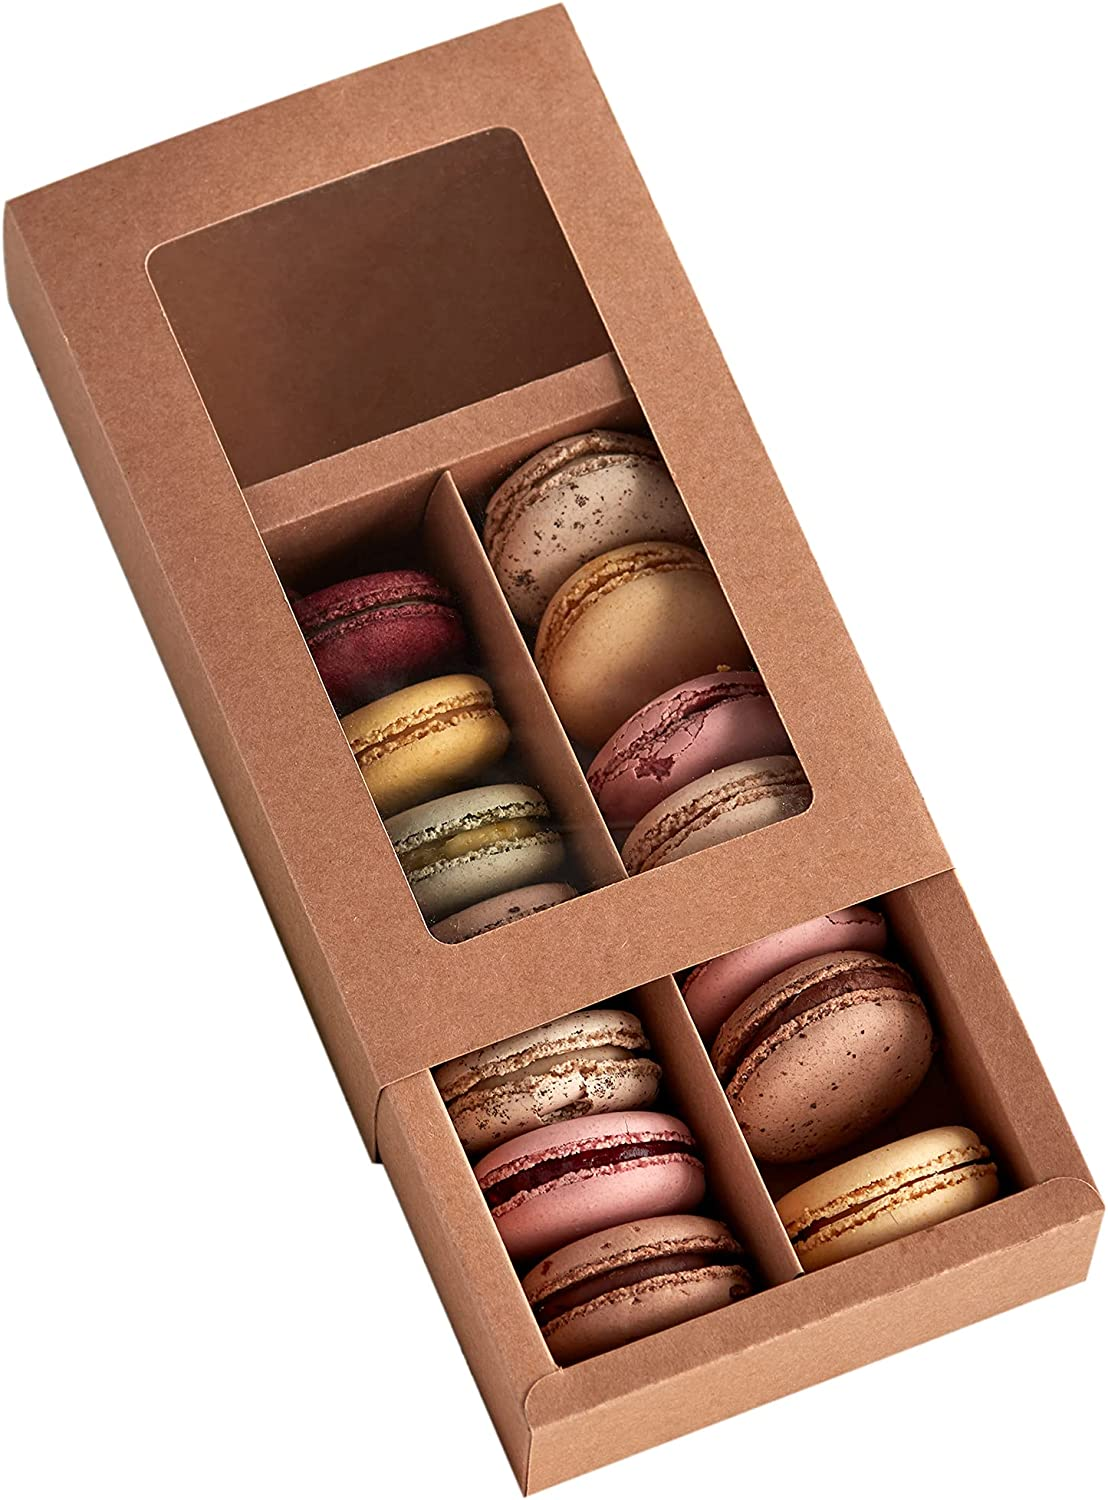 Essos Macaron Boxes for 12 Ranking TOP4 to Clear 14 with Display 67% OFF of fixed price Kraft Brown